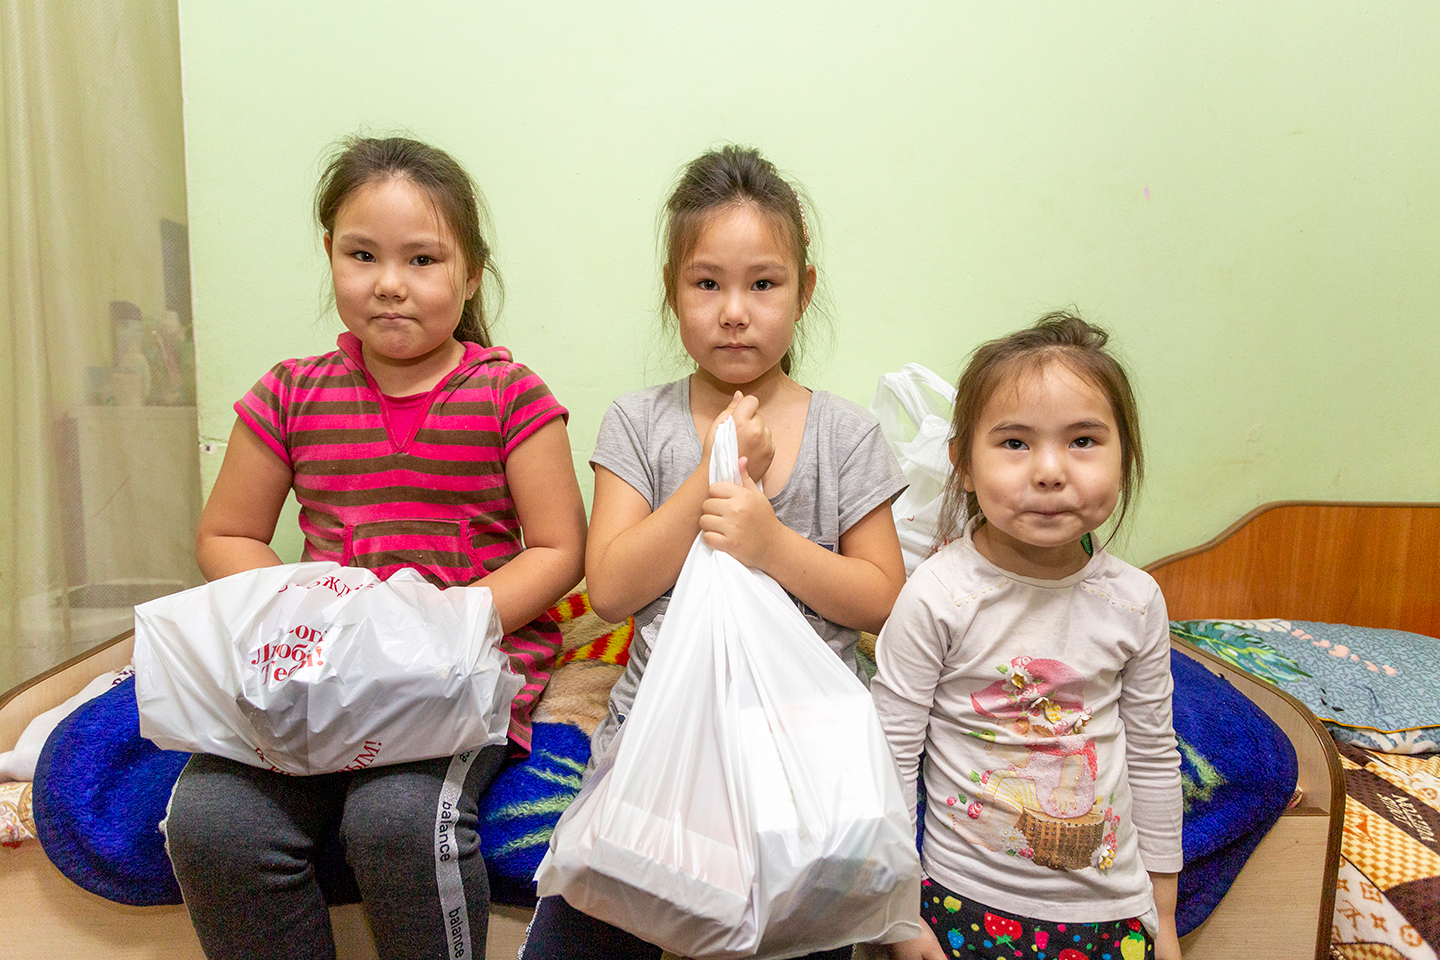 Significant shortages in food, humanitarian aid, and medical supplies are expected in Russia and her neighboring countries, but SGA-sponsored missionary pastors are mobilizing to meet urgent needs.